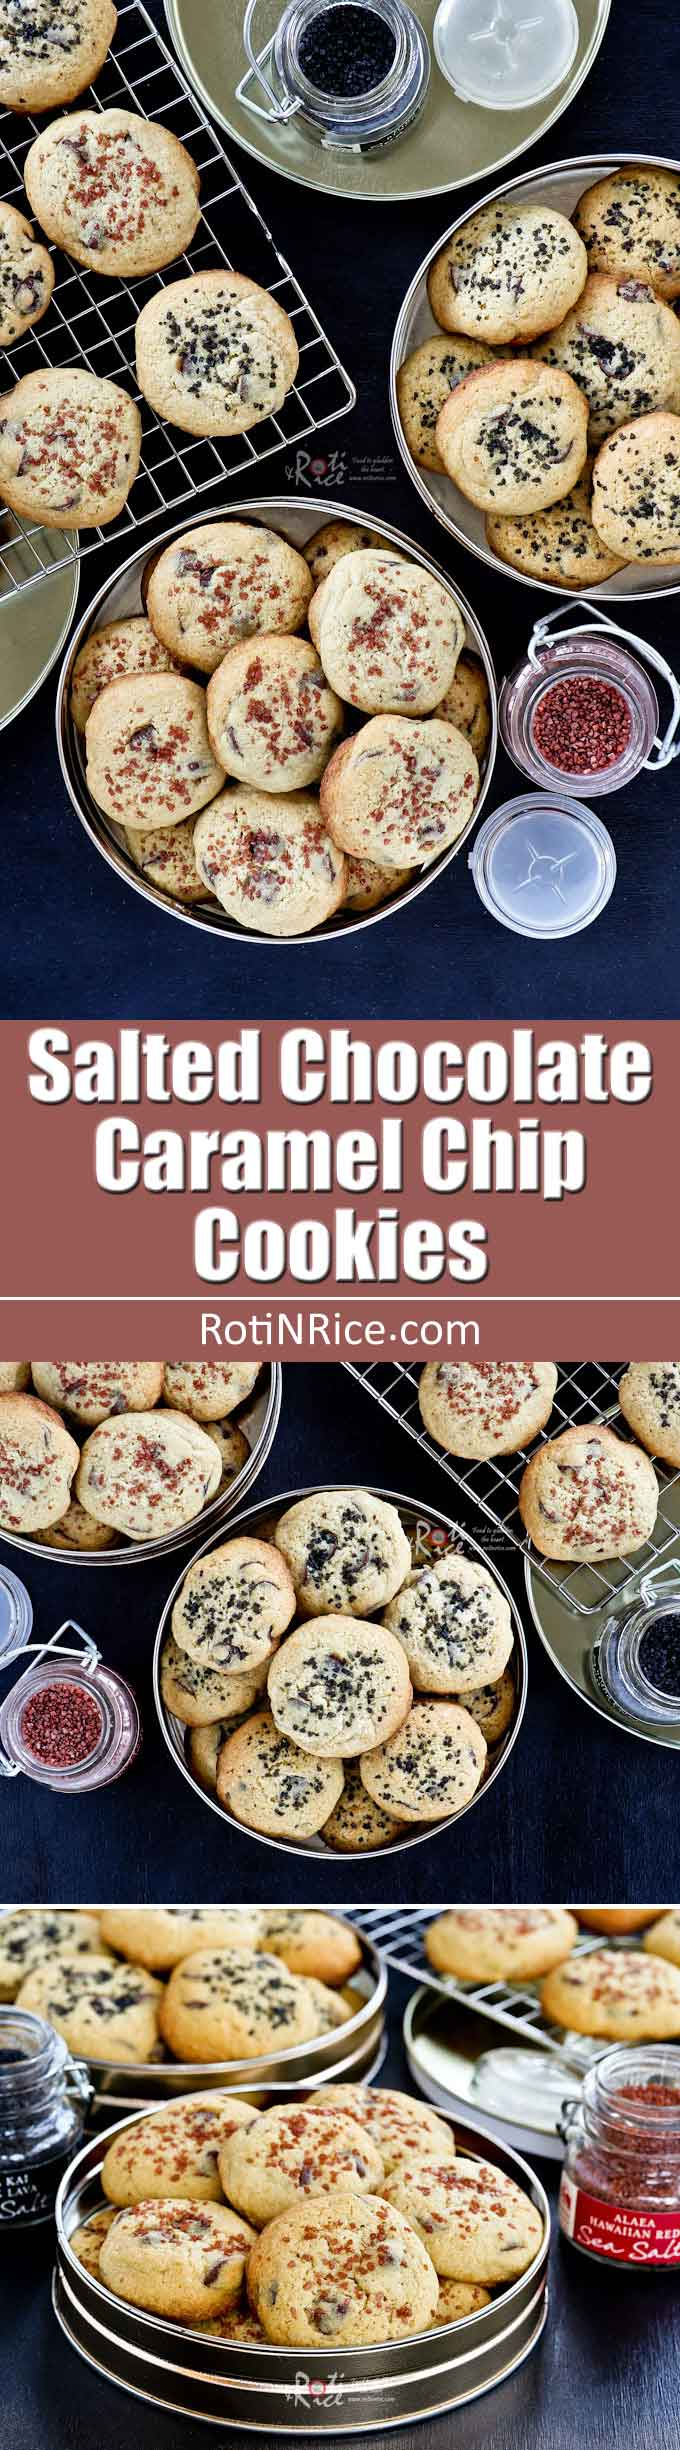 Naturally colored sea salt gives these Salted Chocolate Caramel Chip Cookies a sweet salty flavor. The combination of sugars provide the perfect texture. | RotiNRice.com